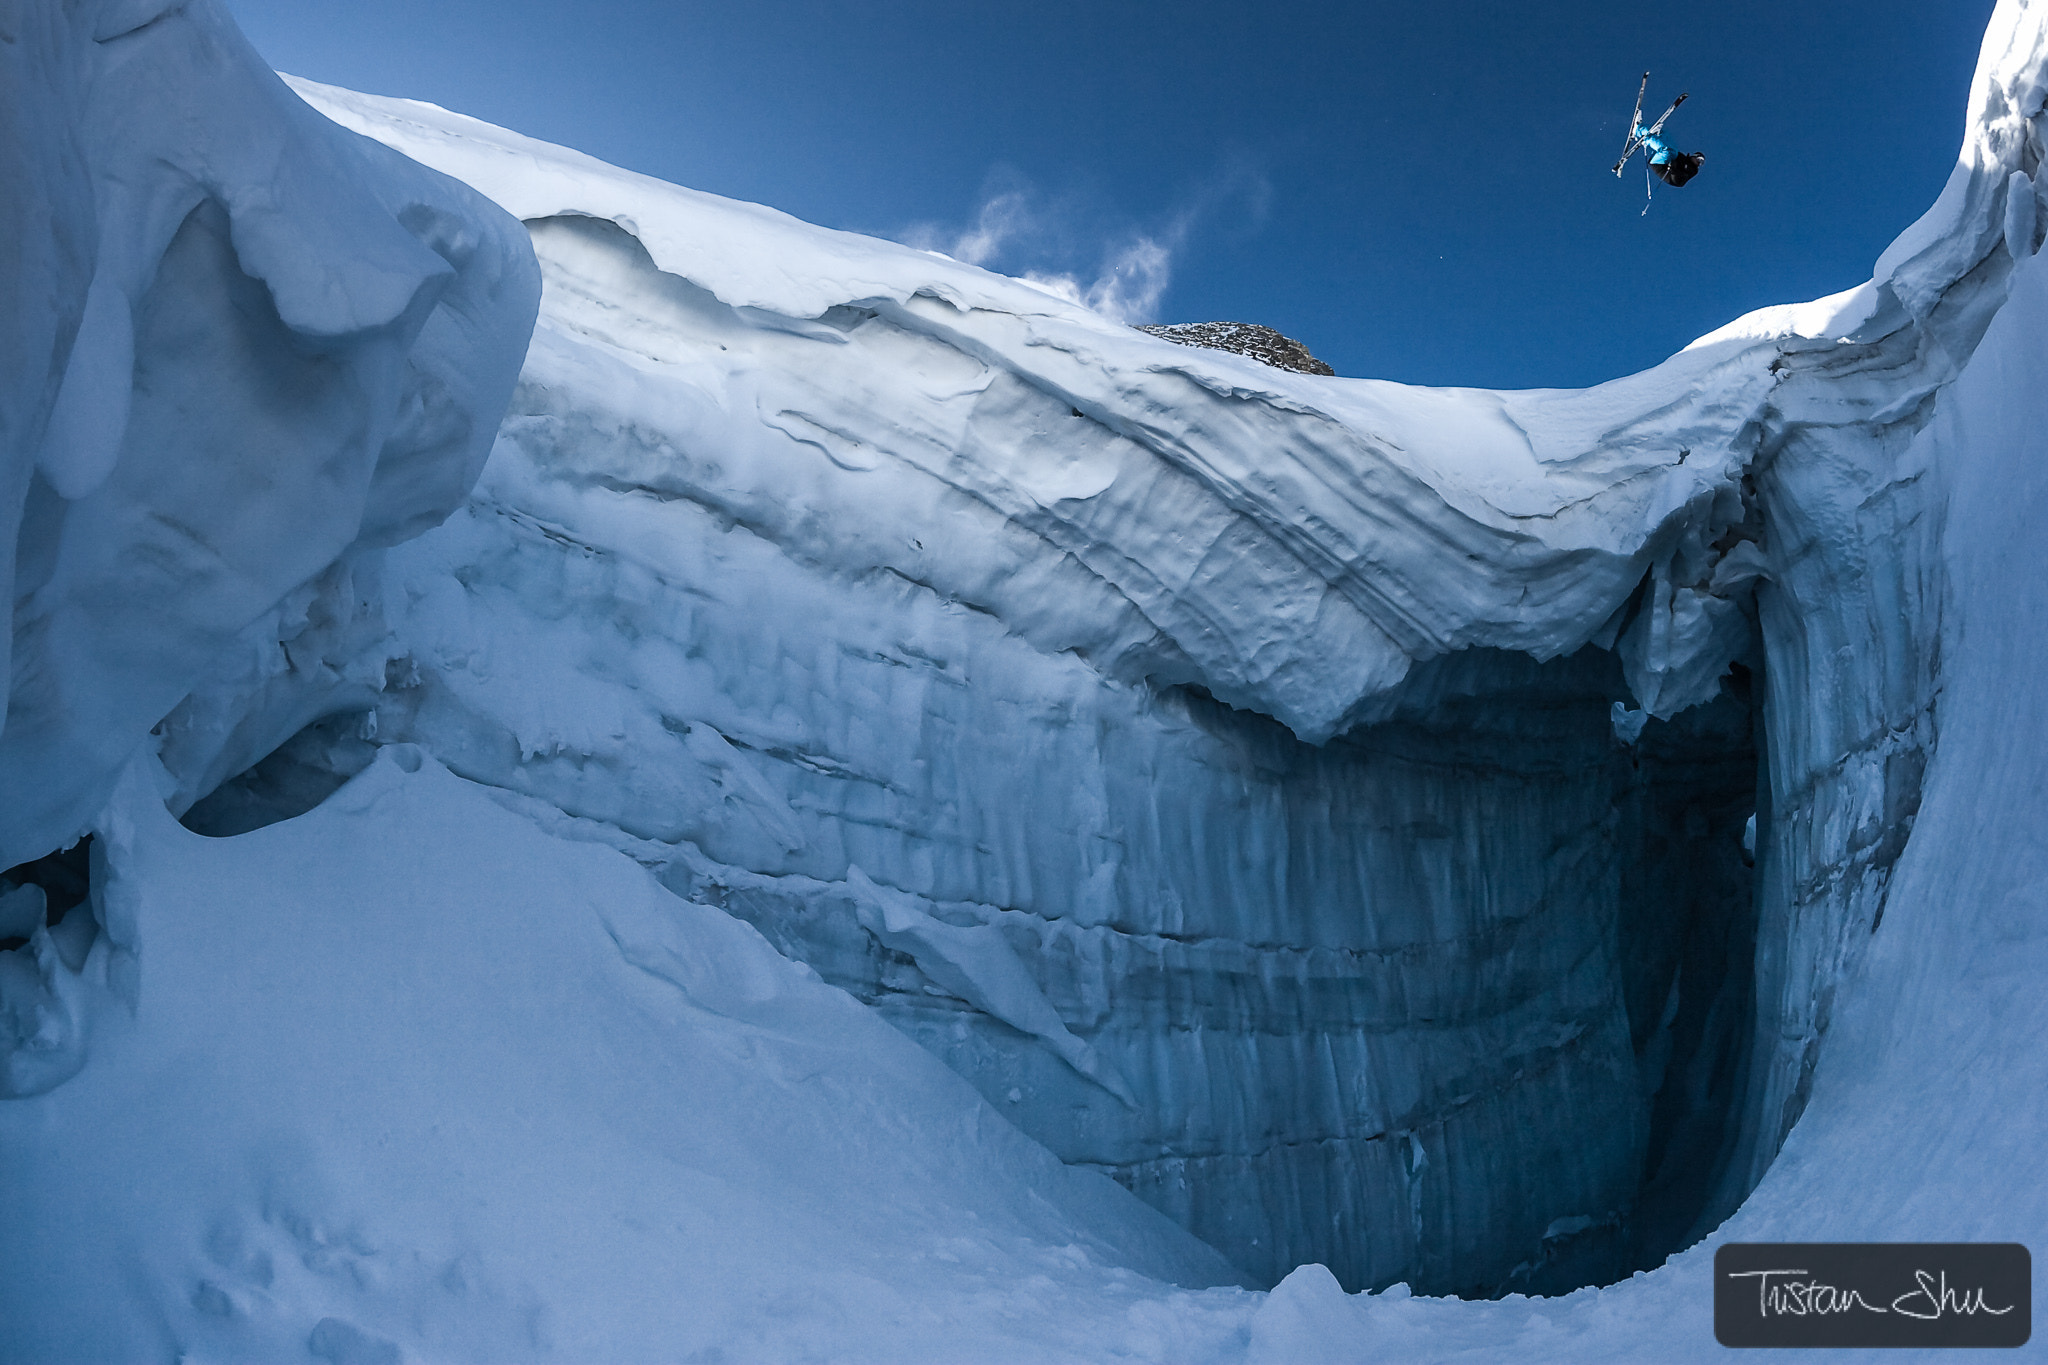 Photograph Flat Spin 360 over Crevasse with Julien Lange by Tristan Shu on 500px